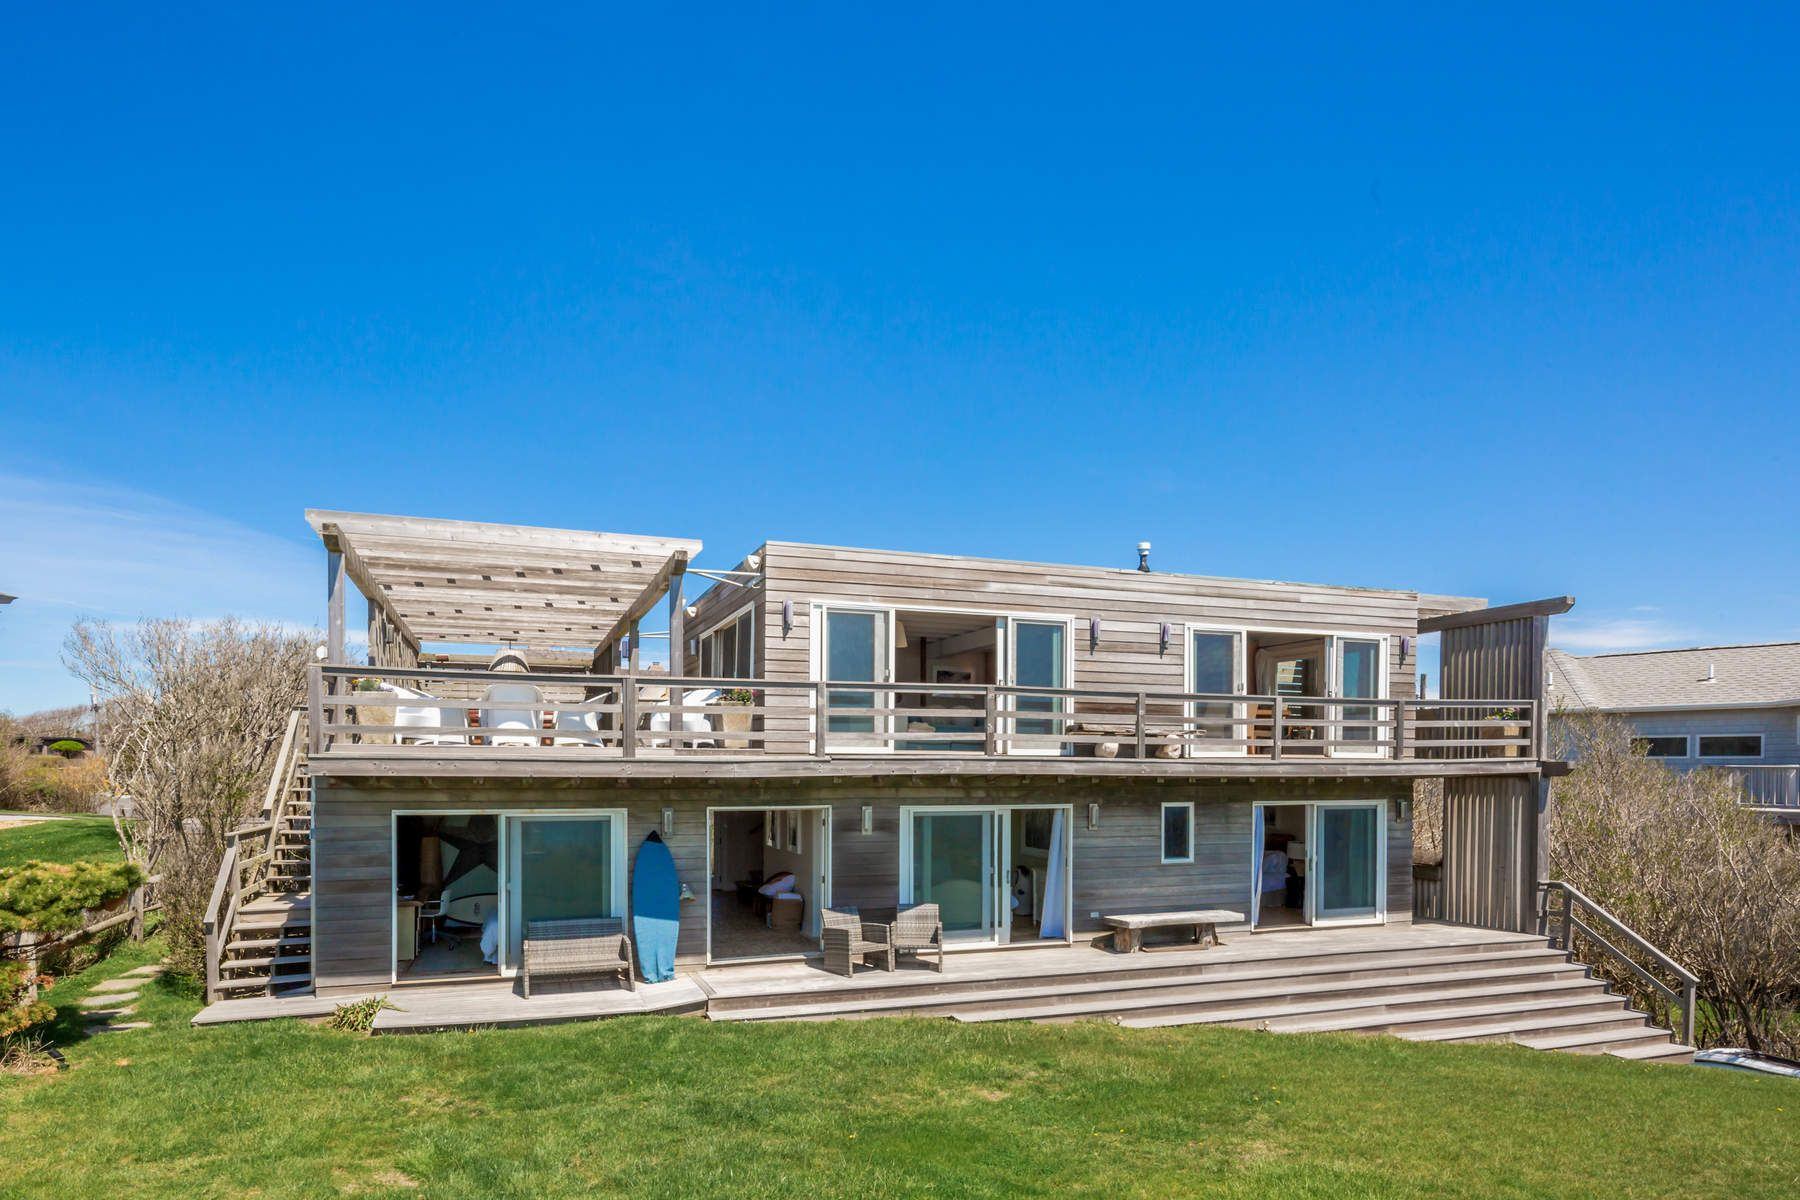 Single Family Home for Sale at Oceanfront Bohemia 102 Surfside Avenue Montauk, New York 11954 United States